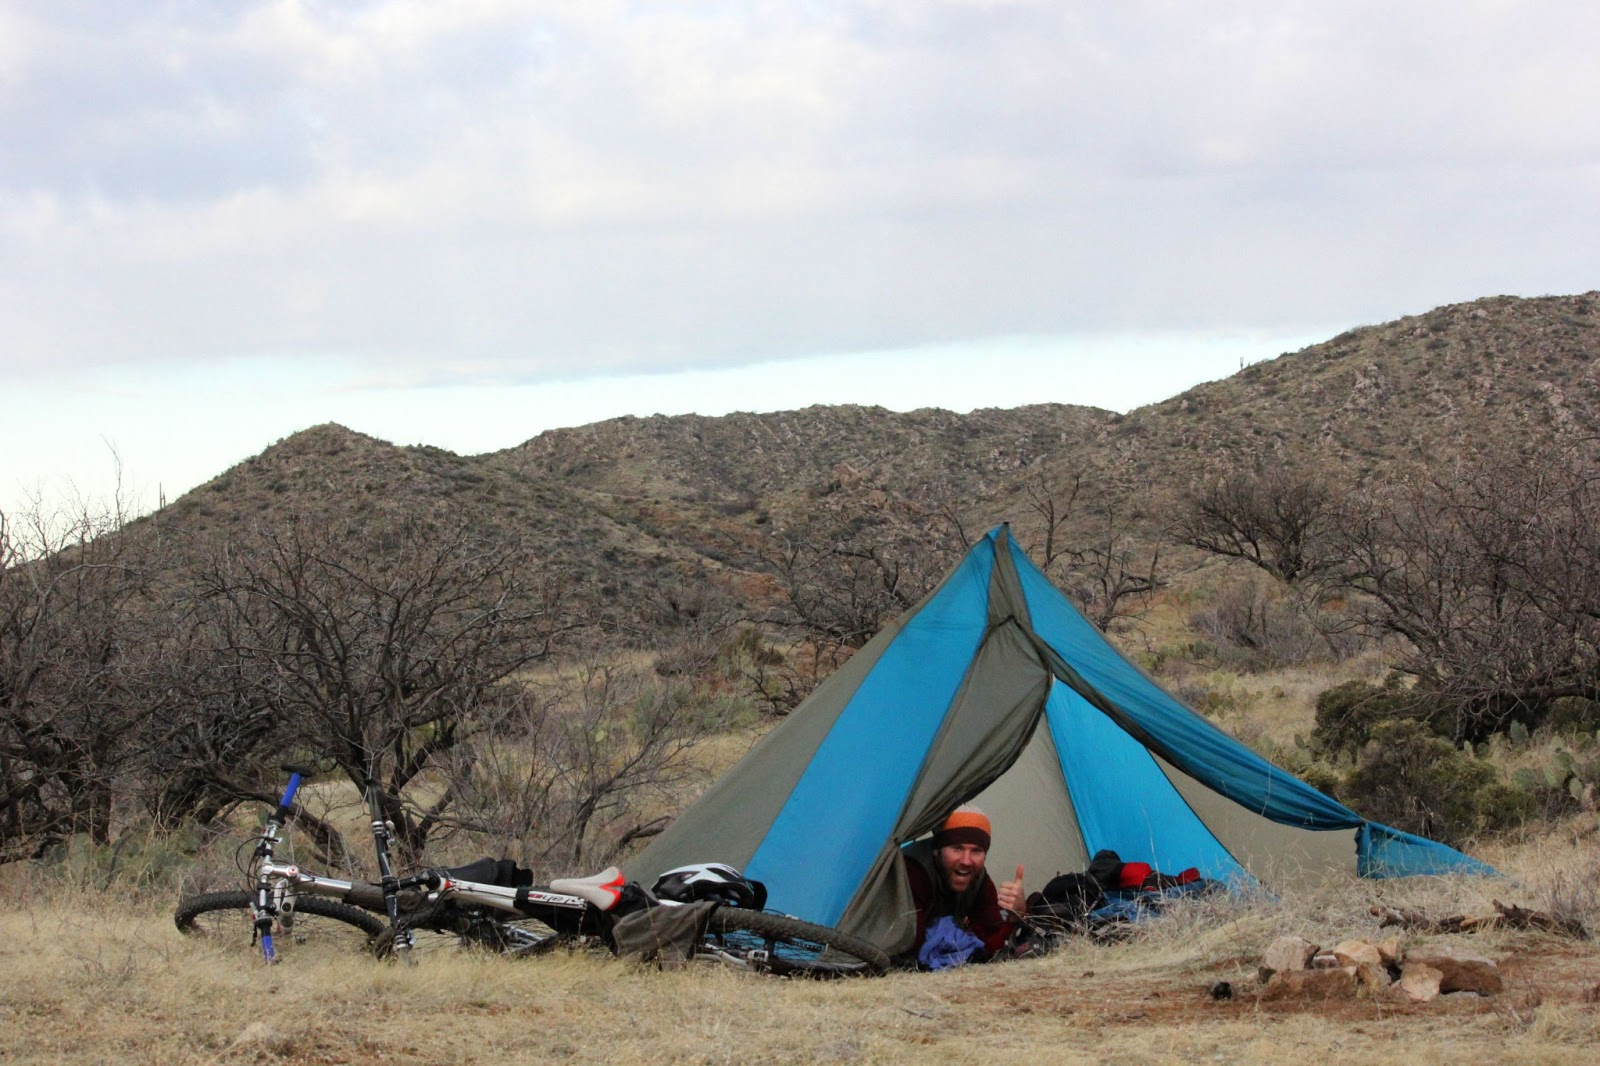 Chad S Bikepacking Diary A Quick Local Overnighter